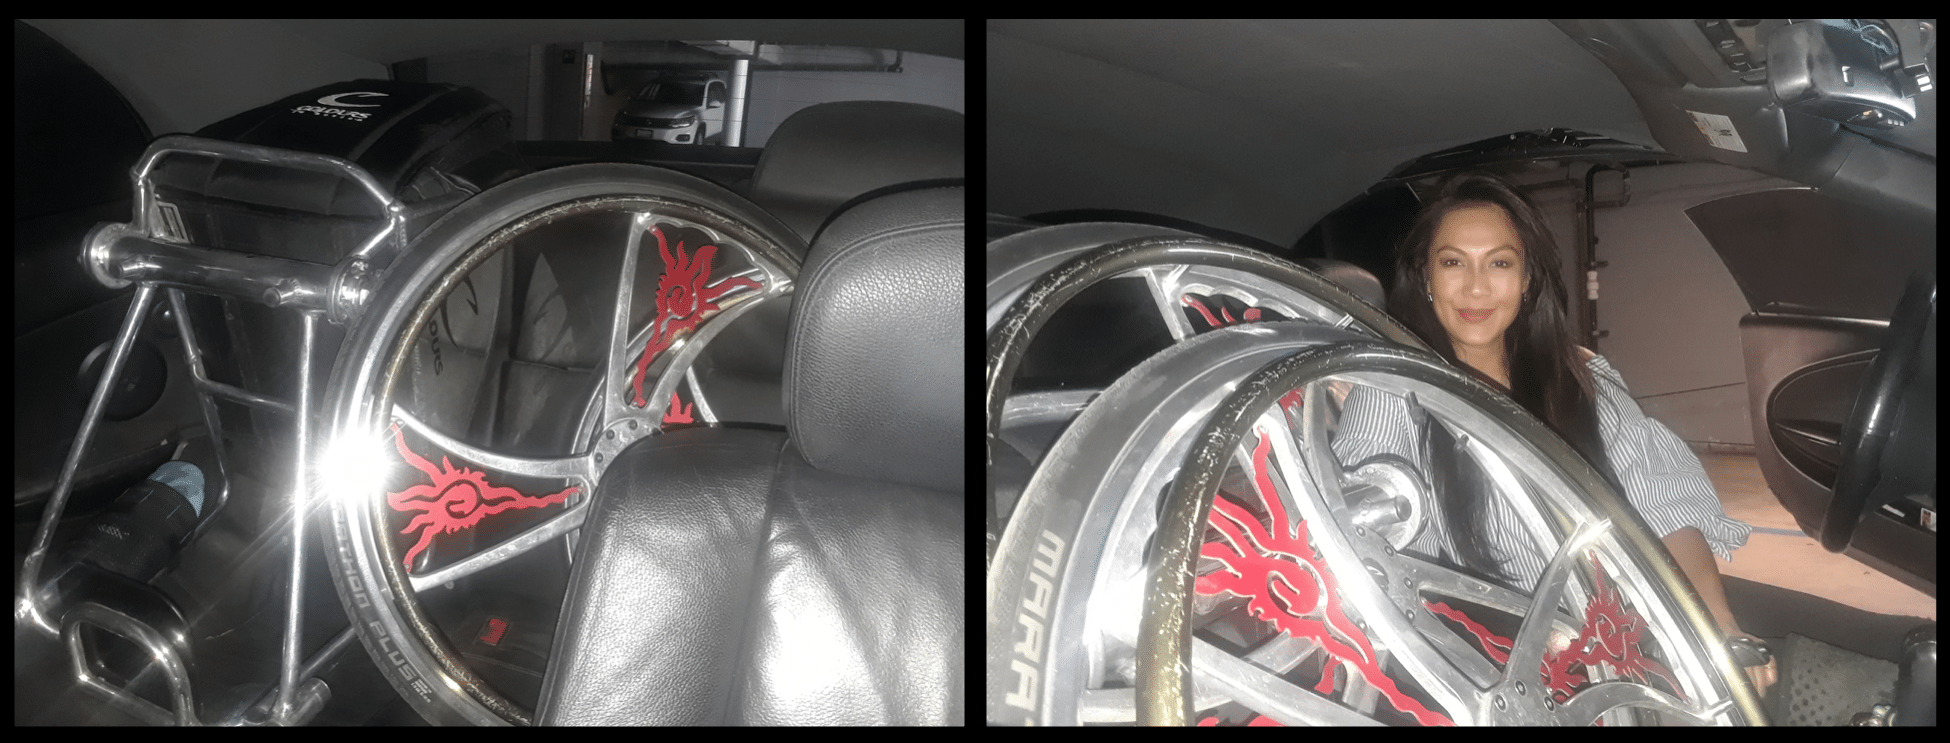 Before and after photos of old method of placing wheelchair in her car and new method of stacking wheels within the frame to create more room for passengers.